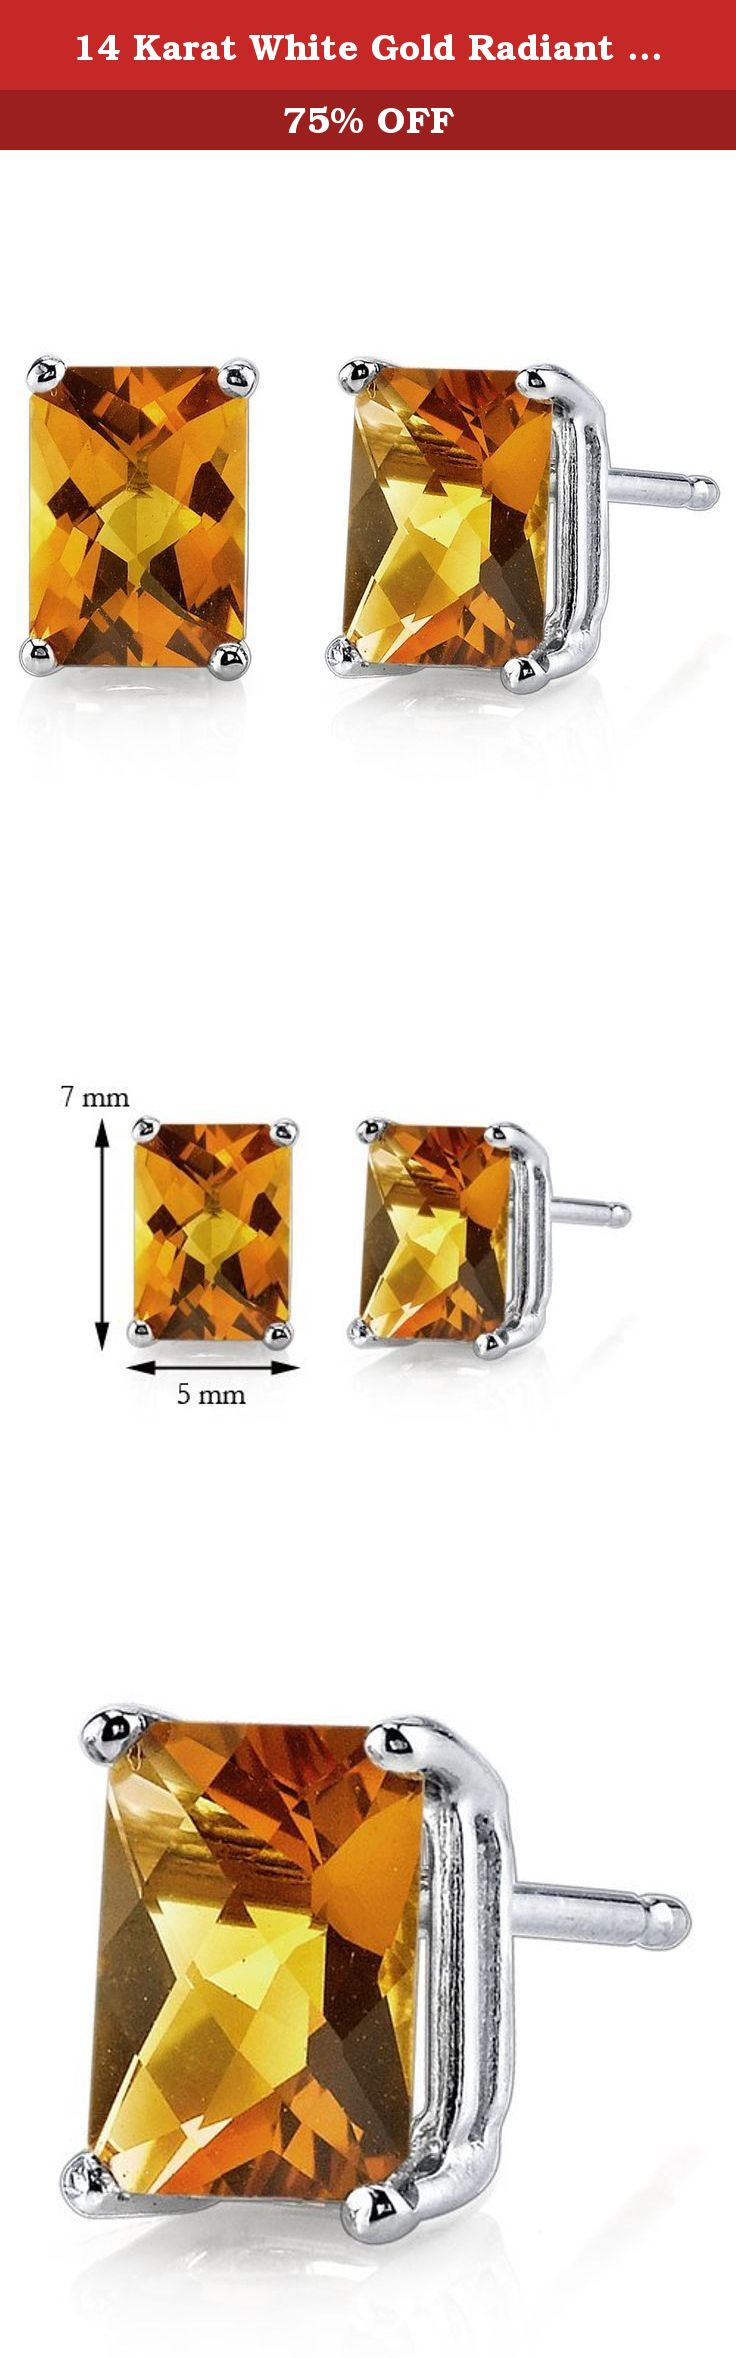 14 Karat White Gold Radiant Cut 1.75 Carats Citrine Stud Earrings. Gemstones: 2 pieces Genuine Citrine, Radiant Cut, 7 x 5 mm, 1.67 carats, Golden Pumpkin Orange Hue with Brilliant Sparkle. Earrings: 1.03 grams pure 14k White Gold with 14k stamp. Earrings feature exceptional Design, Craftsmanship and finishing. Perfect gift for Mothers Day, Birthdays, Valentines Day, Graduation, Christmas or just about any other occasion. Money Back Guarantee. Includes a Signature Gift Box. Style E18578.